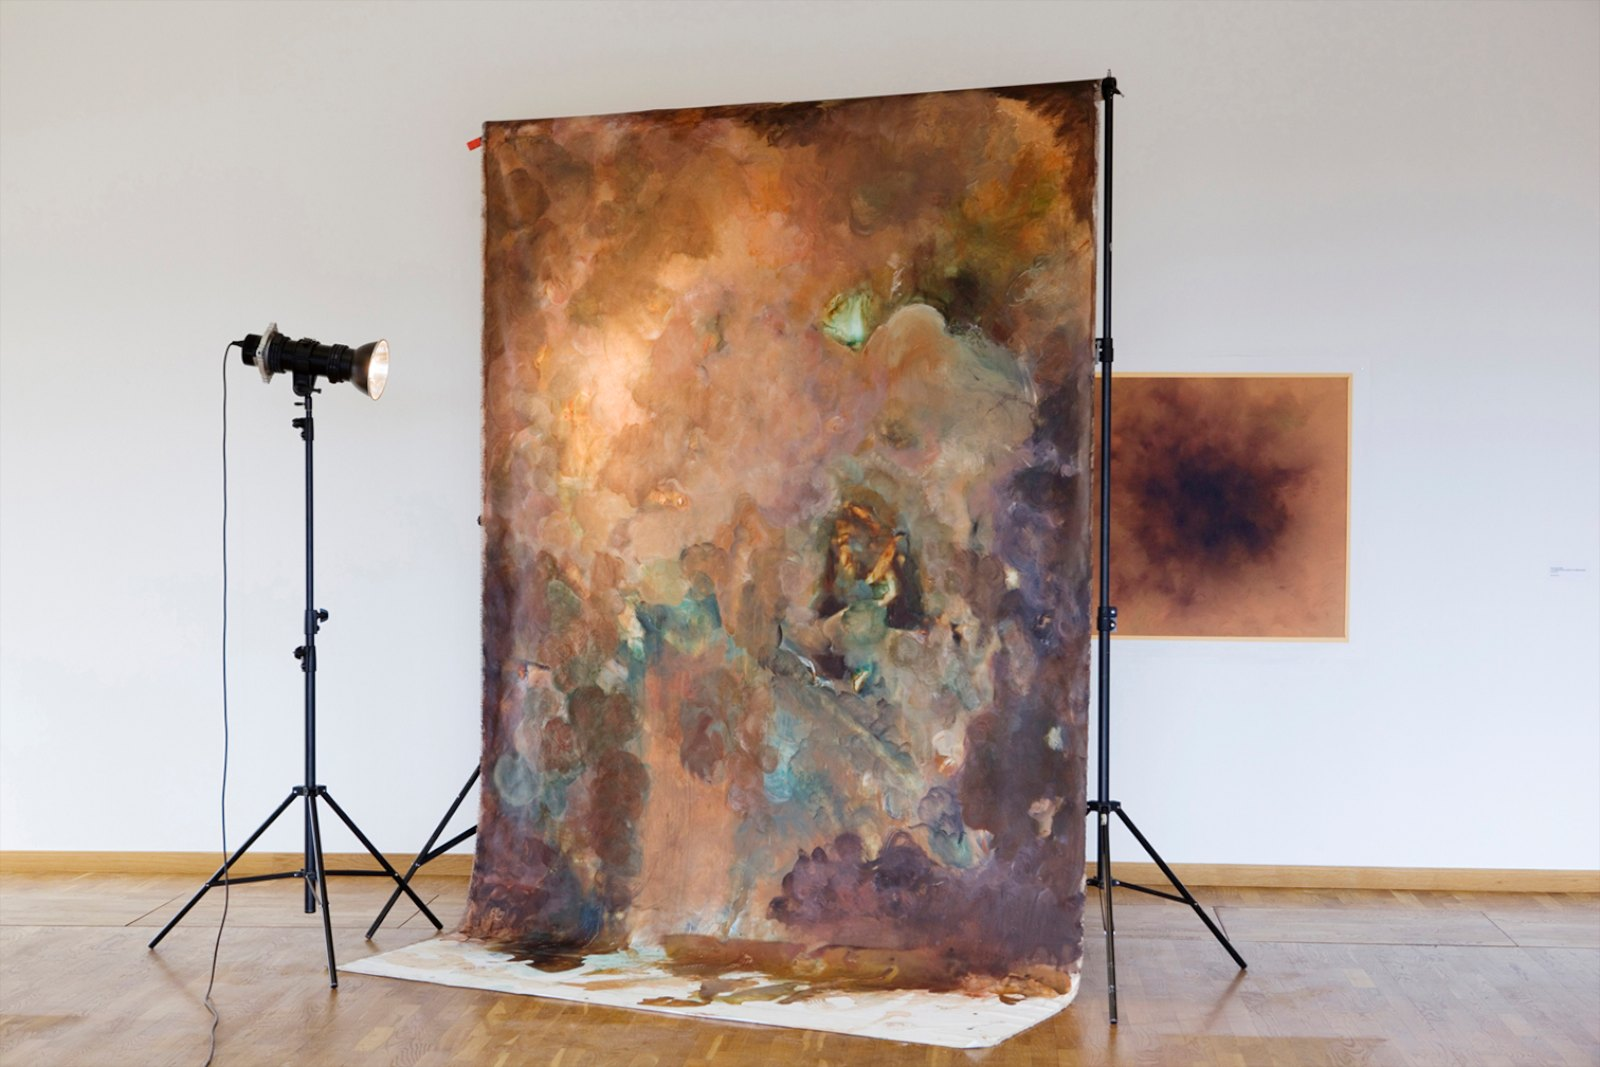 """Back Drop, 2013, acrylic on canvas, studio lamp, light stand, background stand, 250 x 320 x 200 cm.  The negative, 2013, pigment print, 96 x 98 cm, ed. 5. Installation view """"Outside the Sun is Shining and the Fat Lady Dances"""", Examination show, Konradsberg, Stockholm, 2013"""